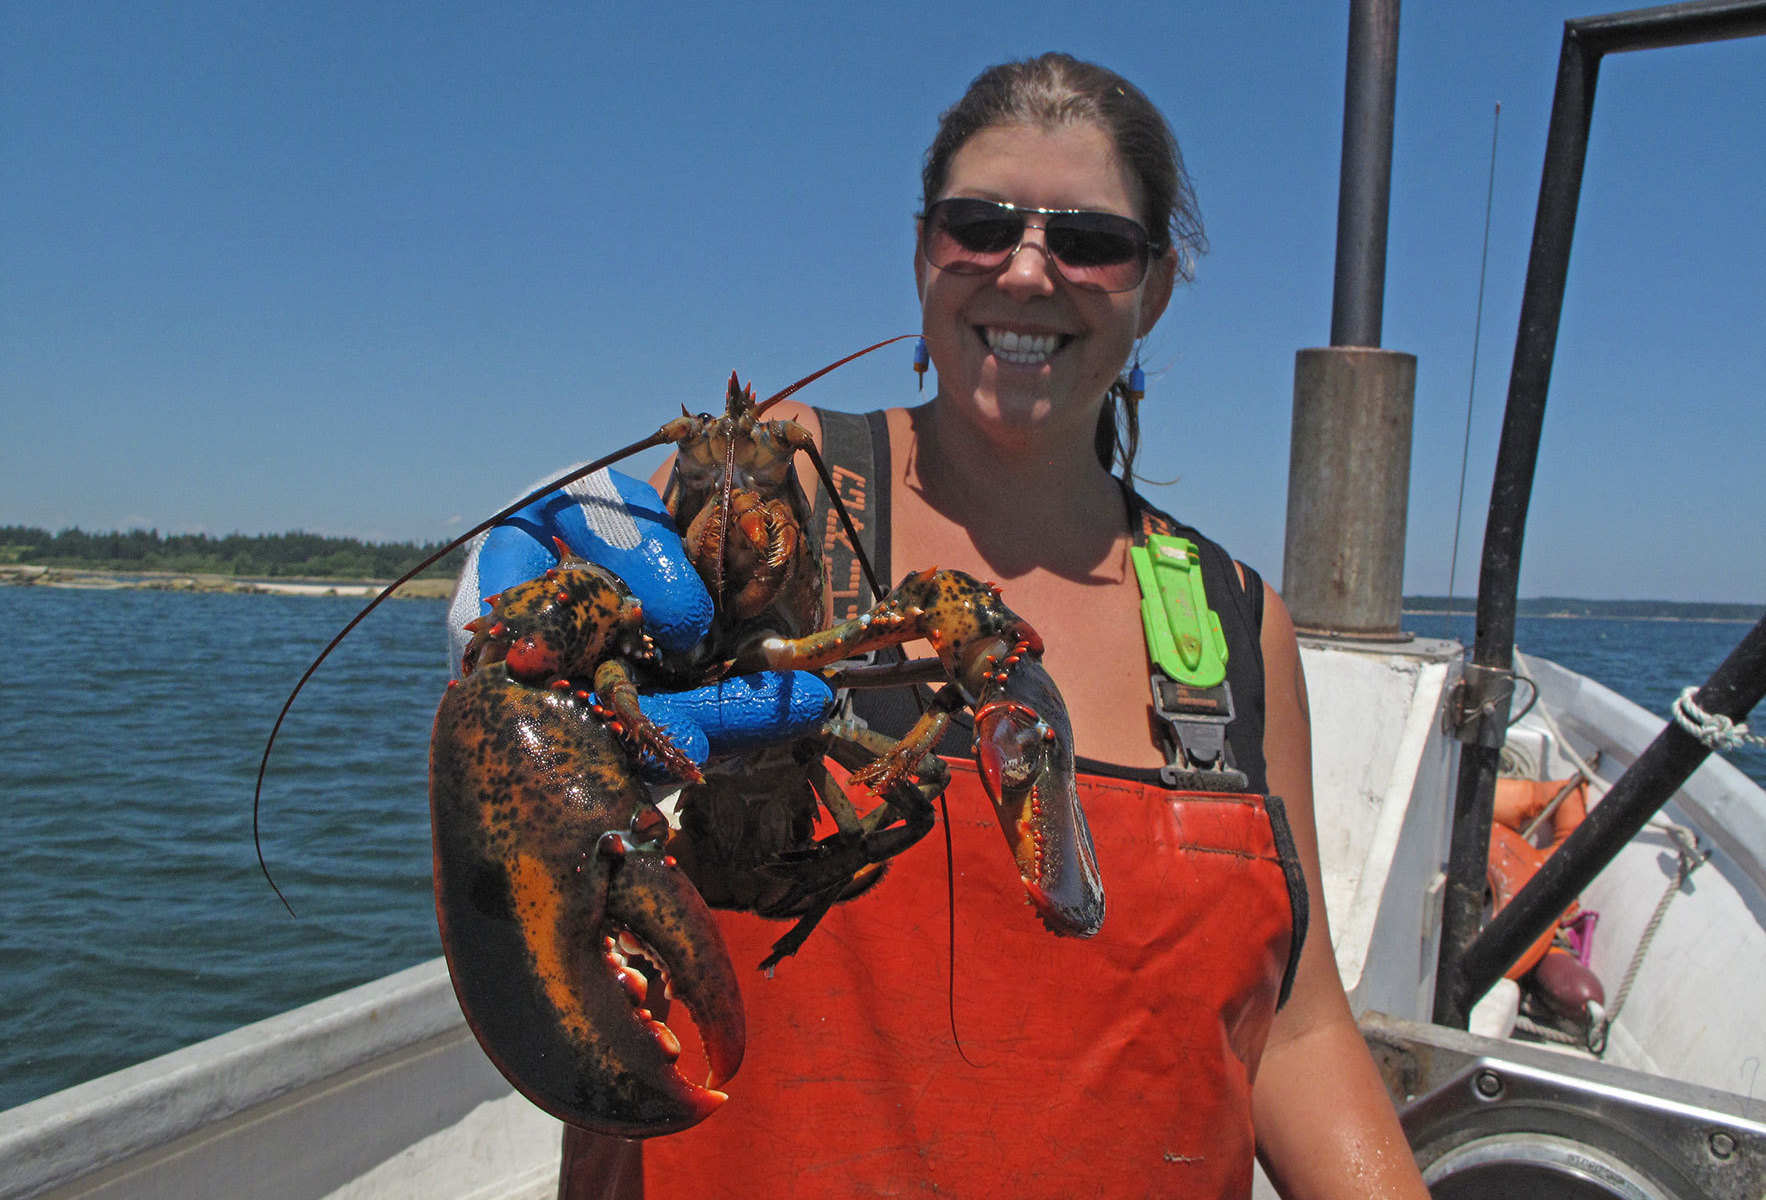 She 39 s no man she 39 s a lobsterman ideastream for Lobster fishing in maine